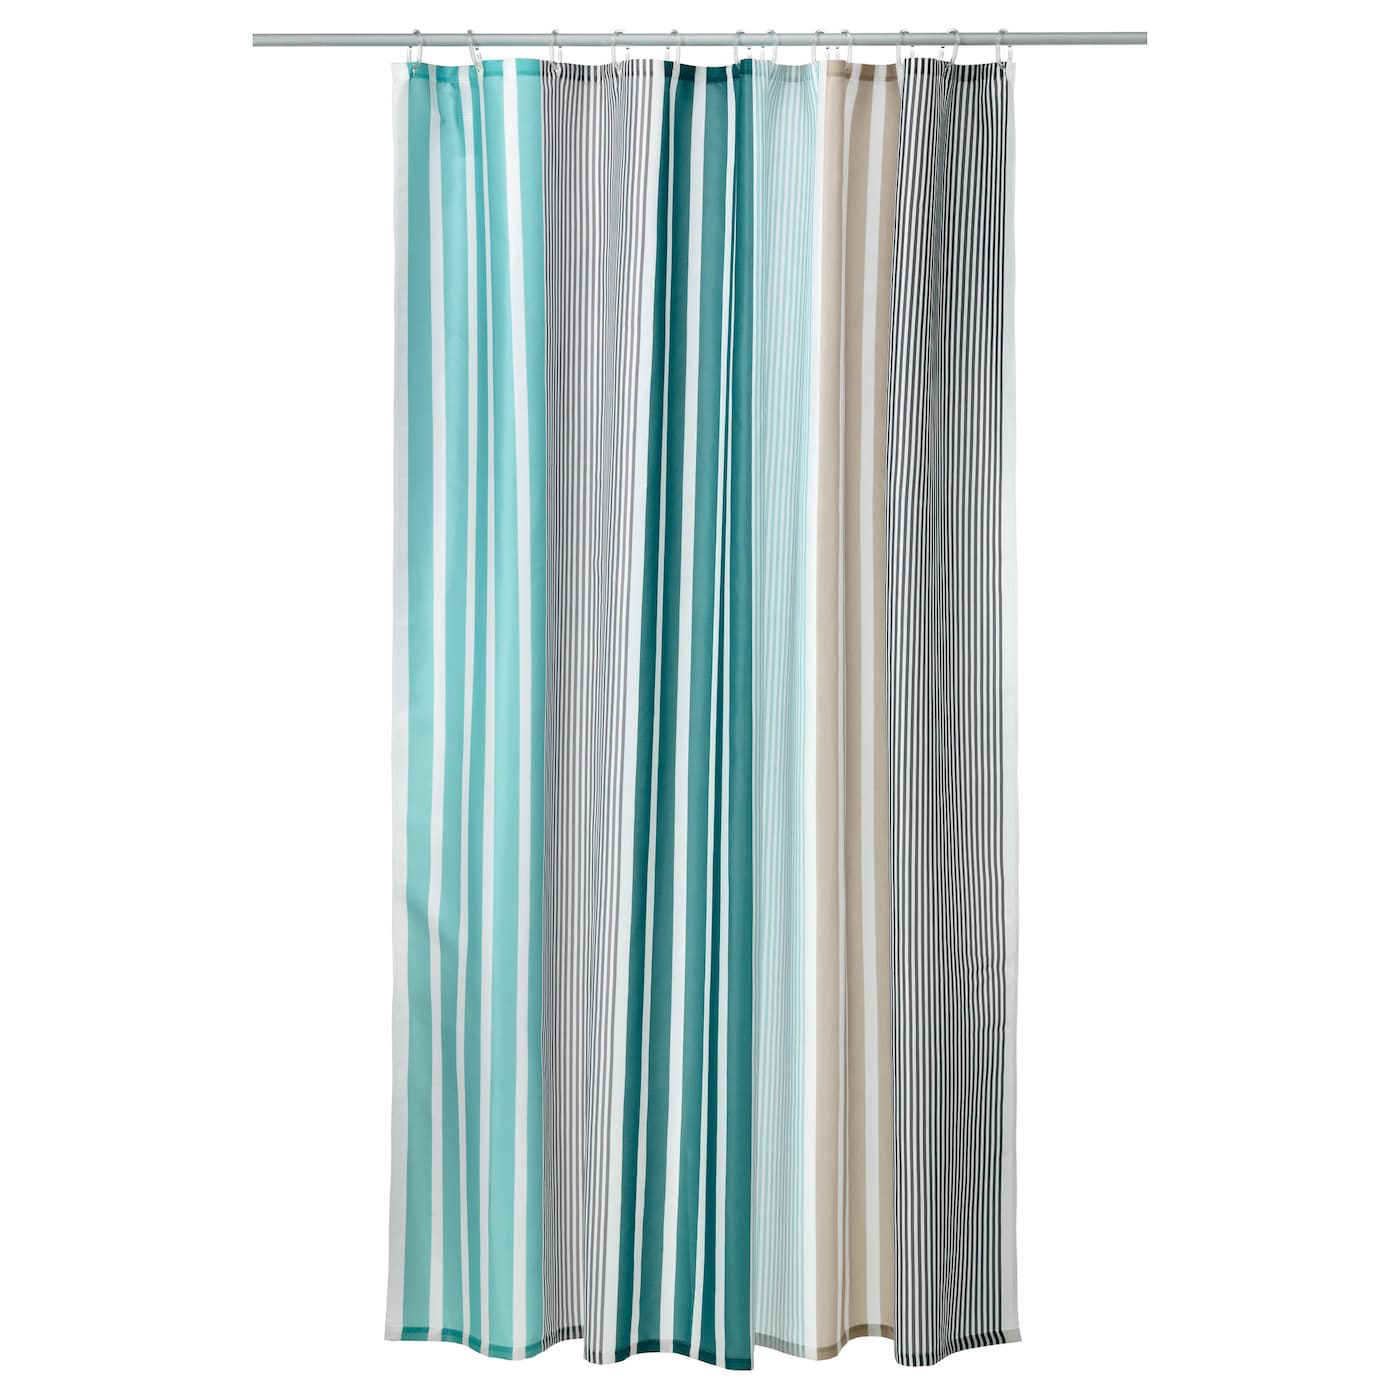 IKEA BOLMÅN shower curtain Densely-woven polyester fabric with water-repellent coating.